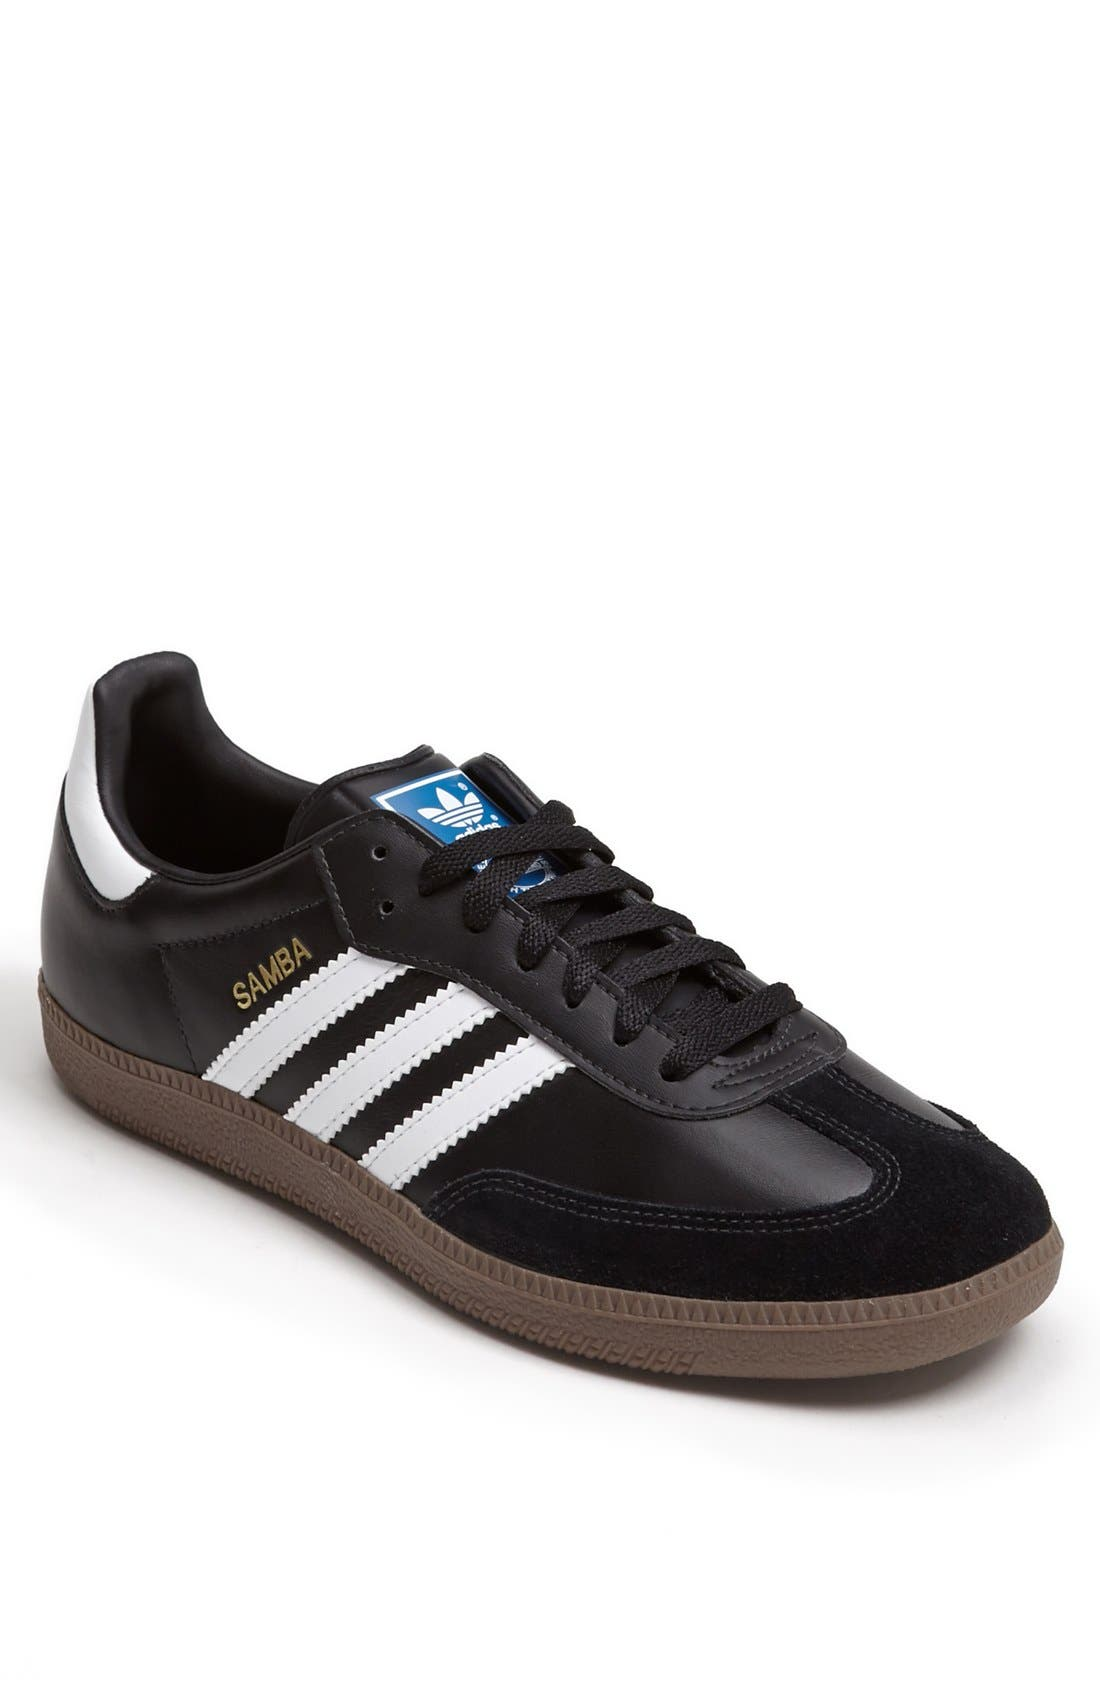 adidas samba indoor soccer shoes